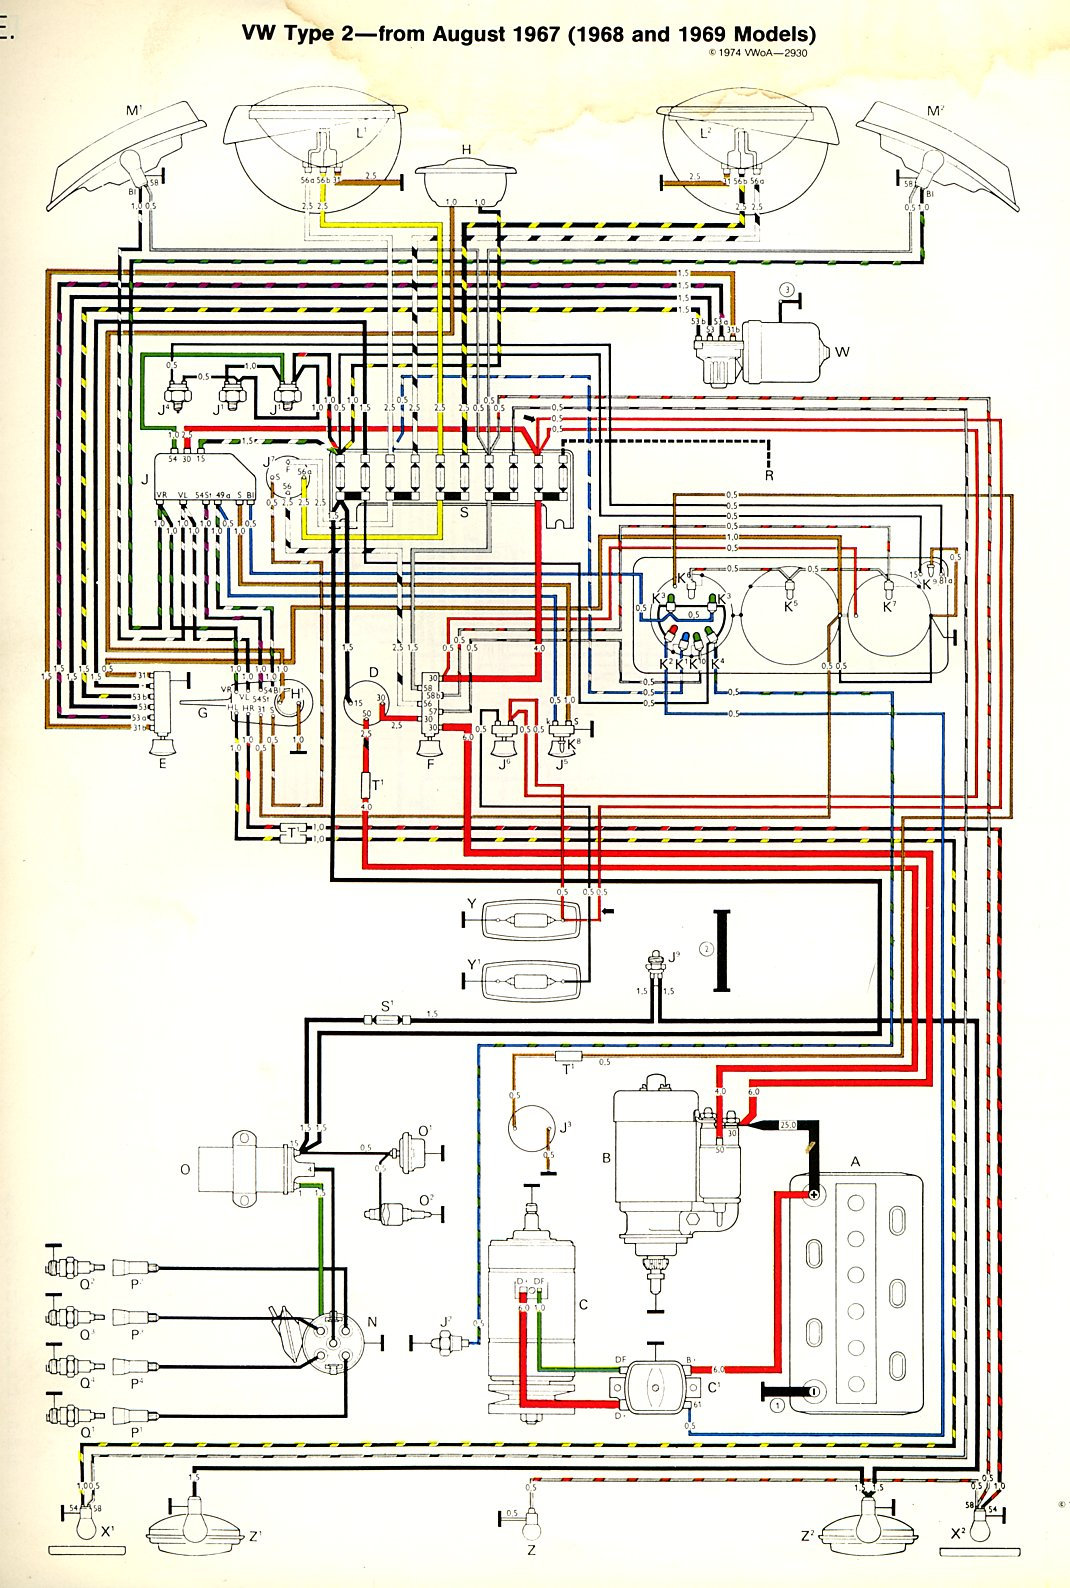 hight resolution of the samba wiring diagram wiring diagram yerthesamba com type 2 wiring diagrams the samba beetle wiring